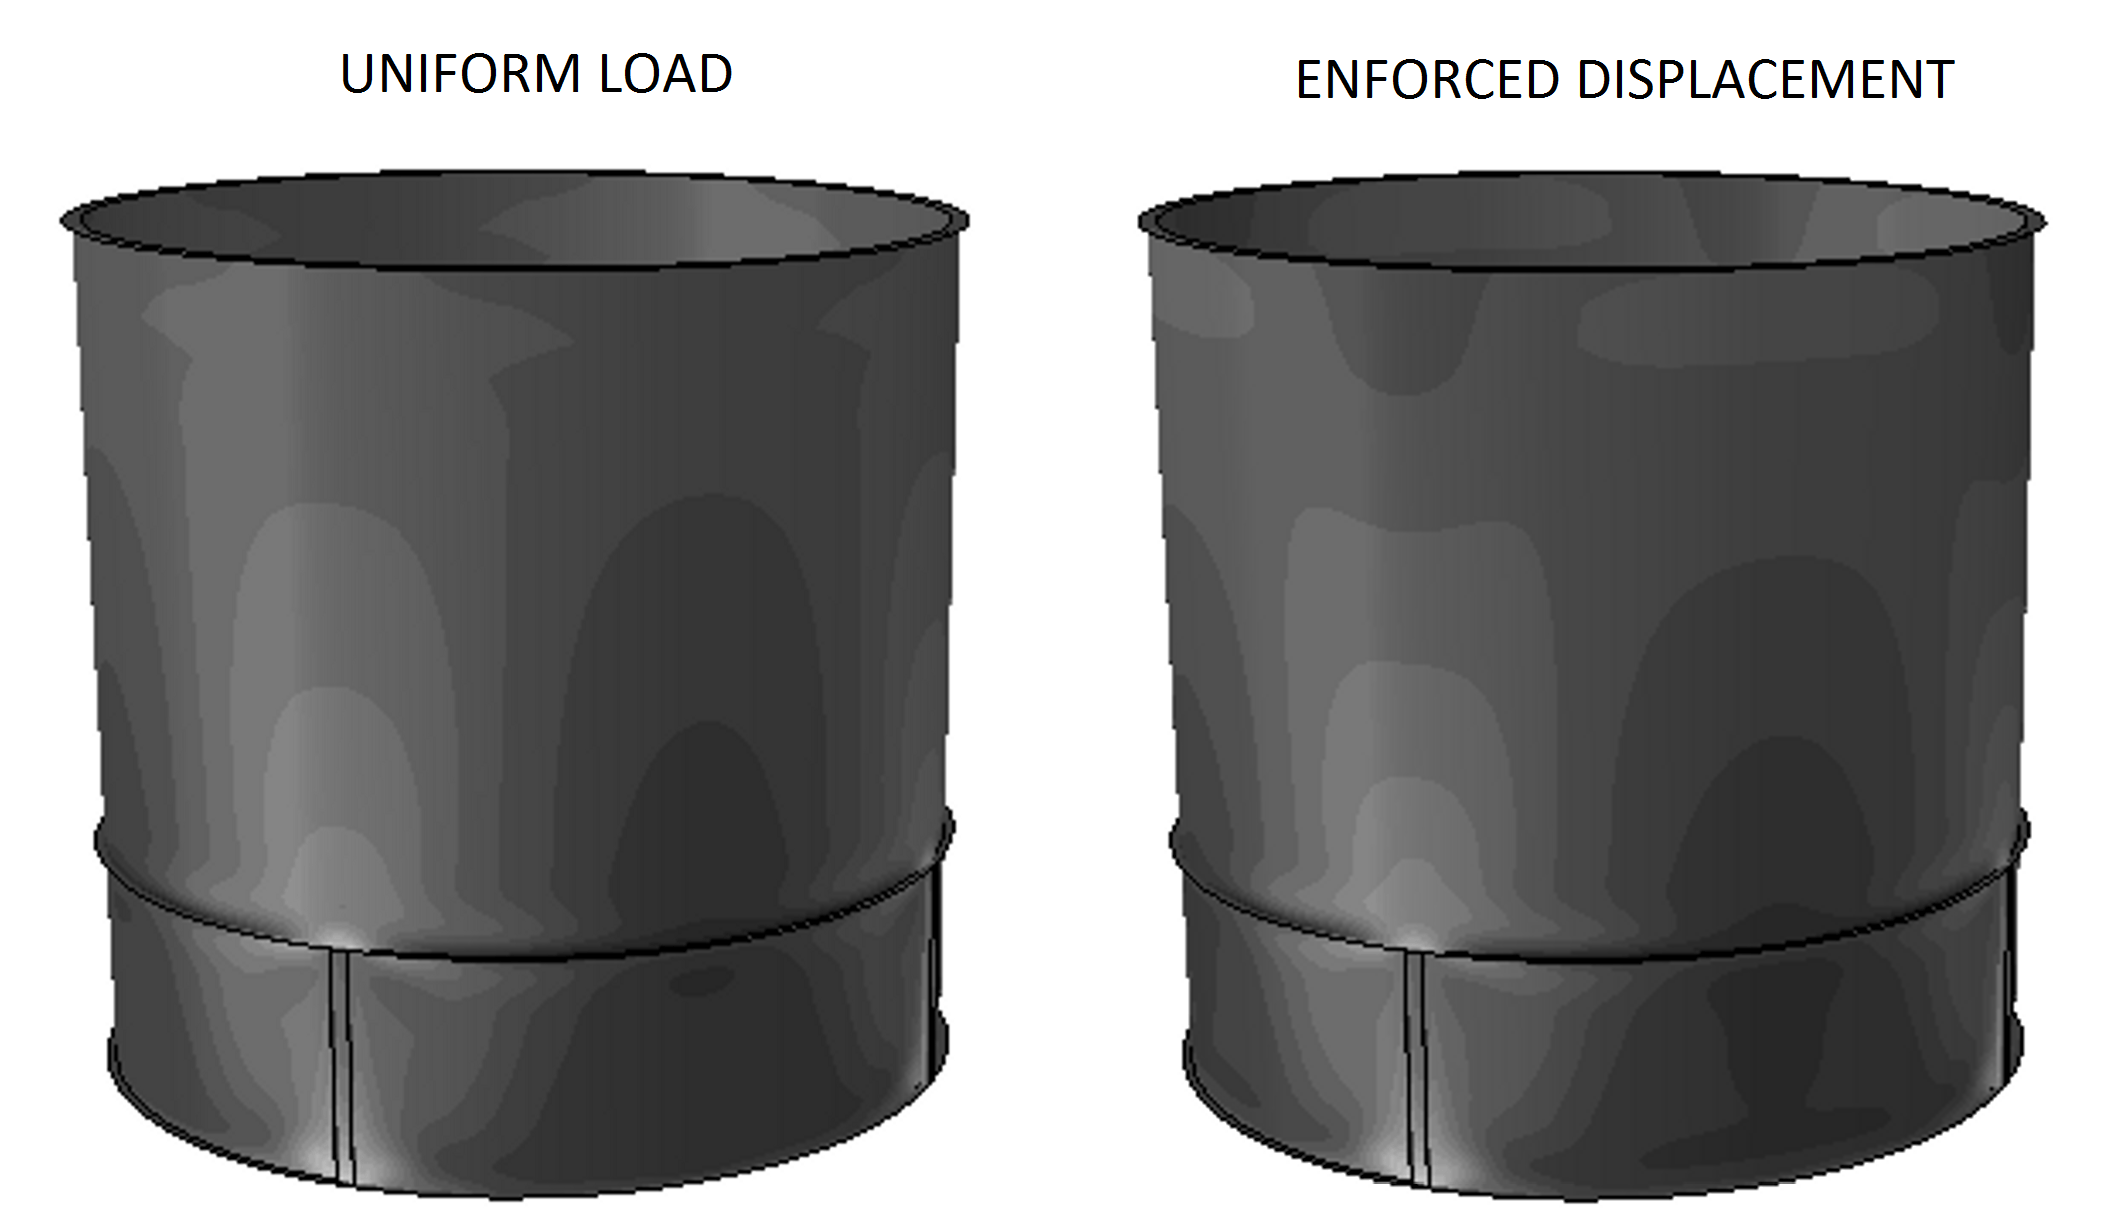 Active forces and enforced deformations - shell example